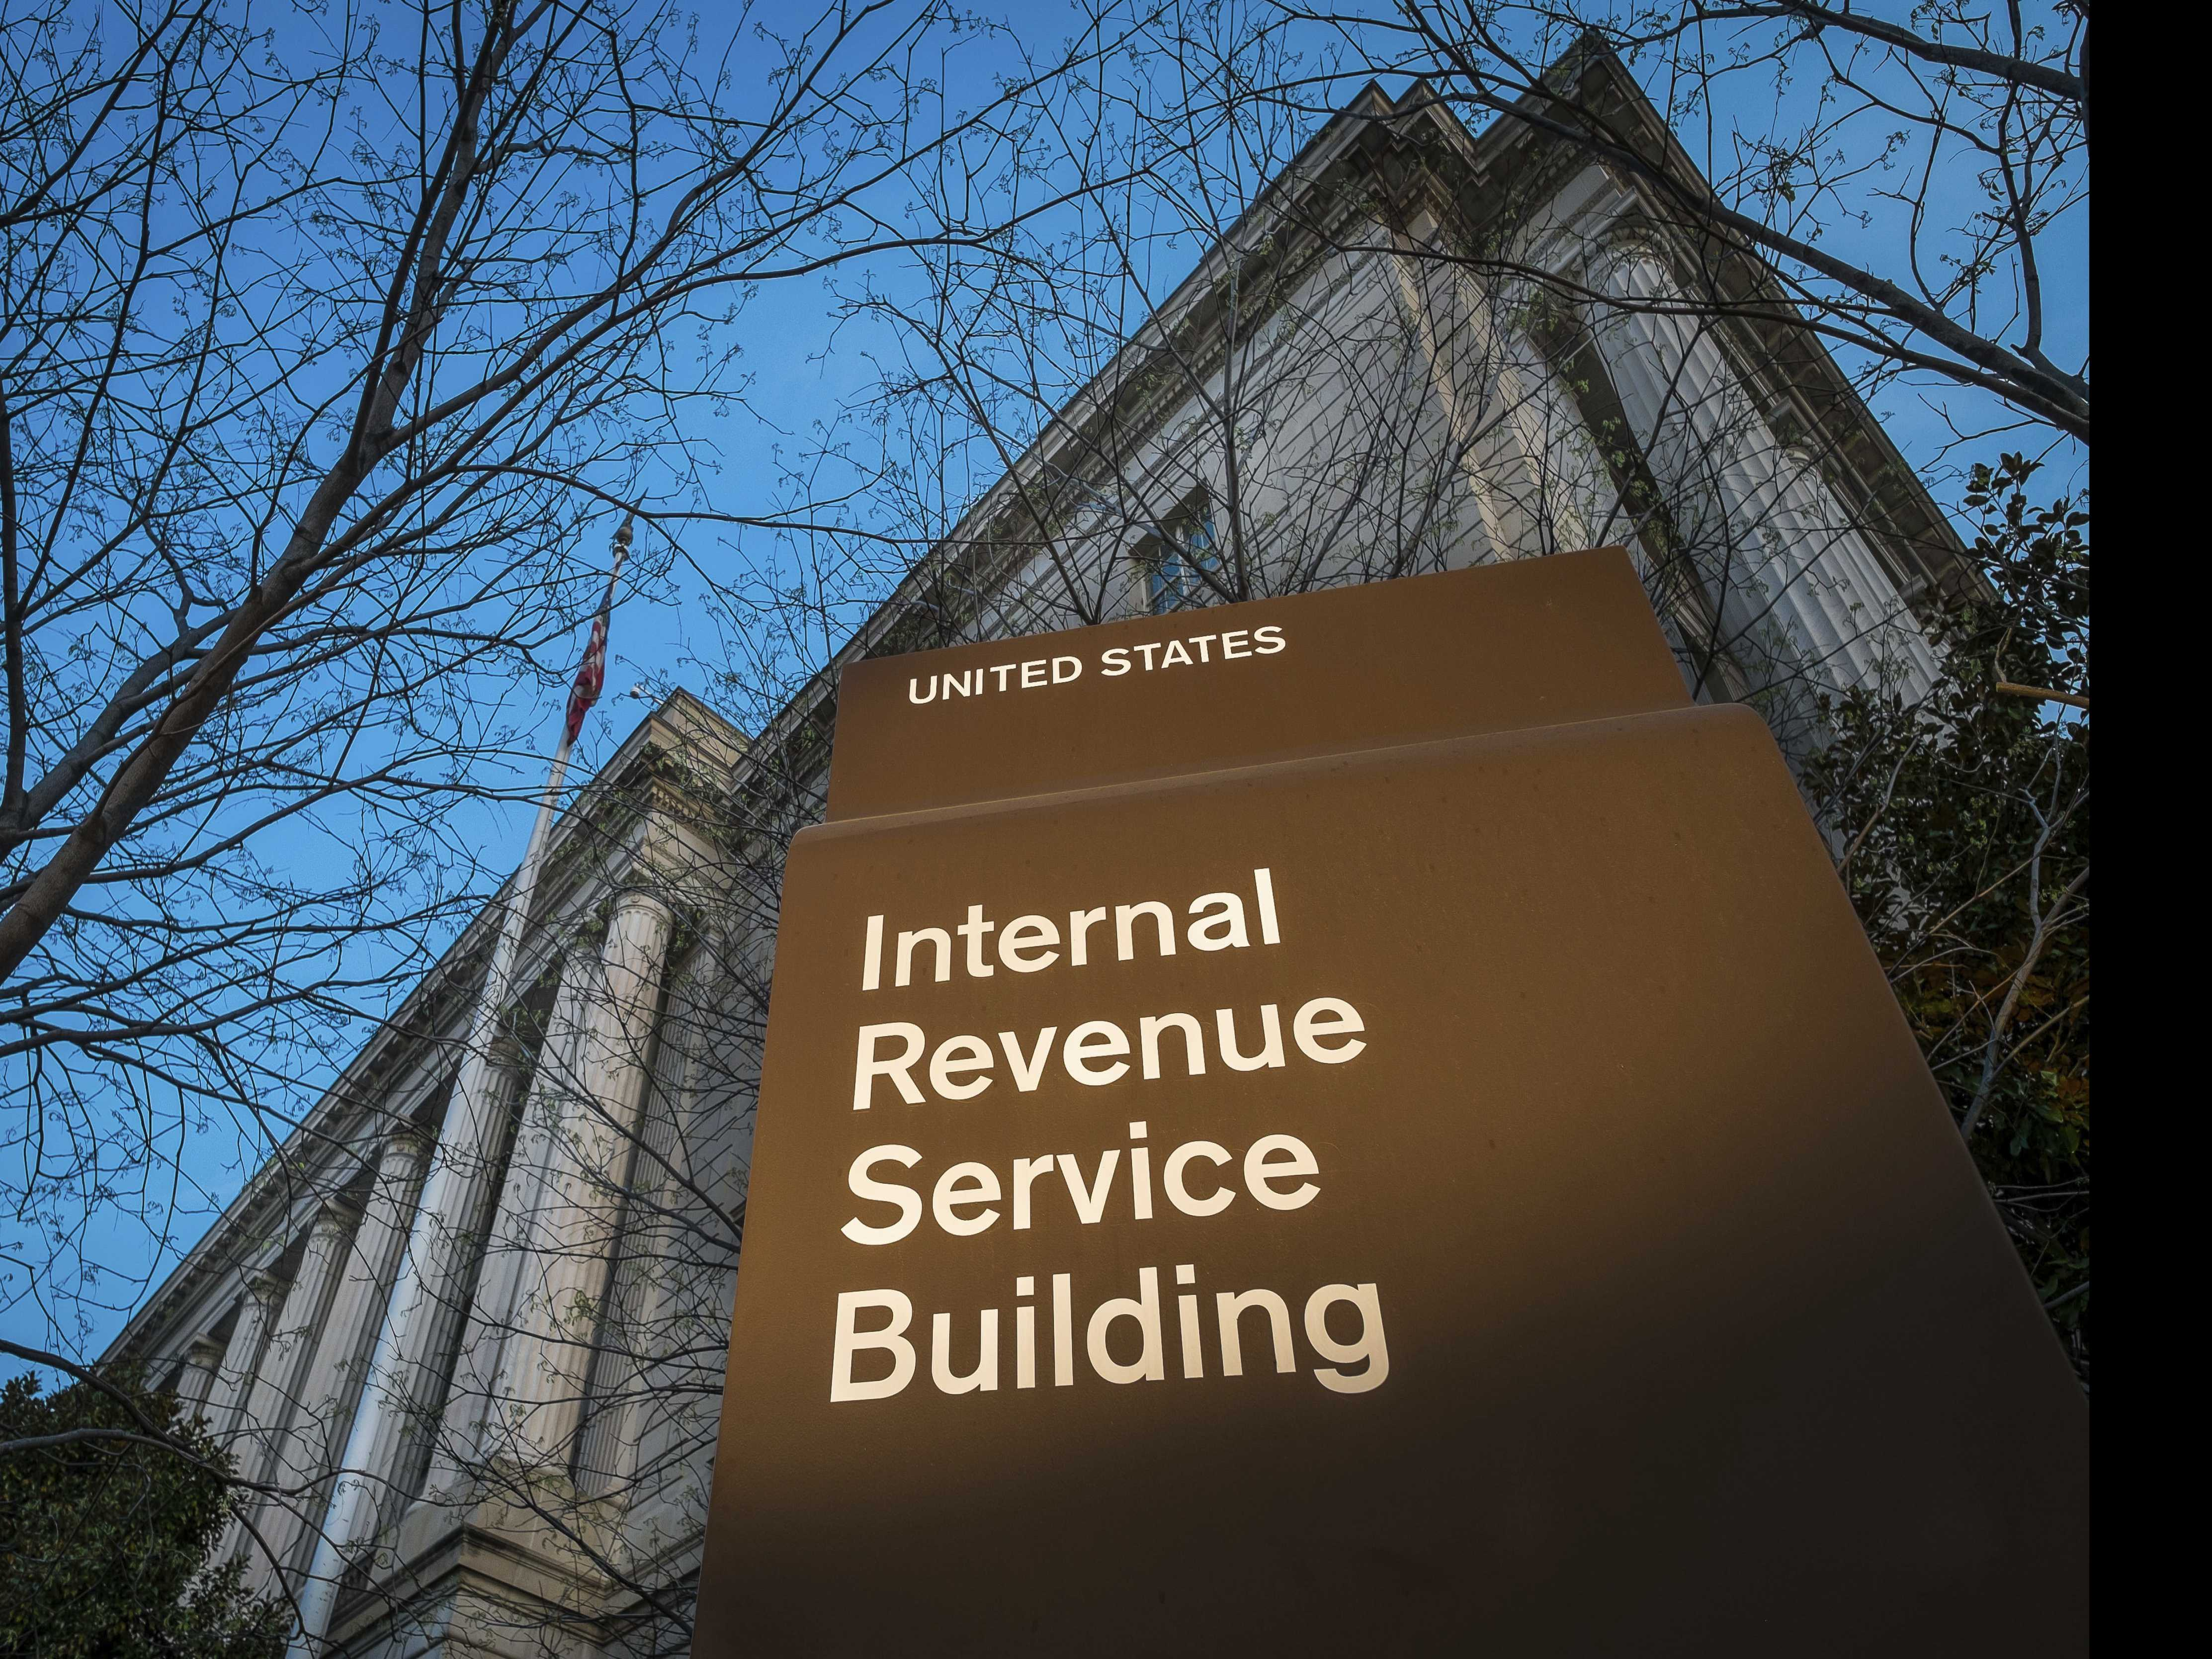 Tea Party Groups Settle Lawsuits Over IRS Mistreatment